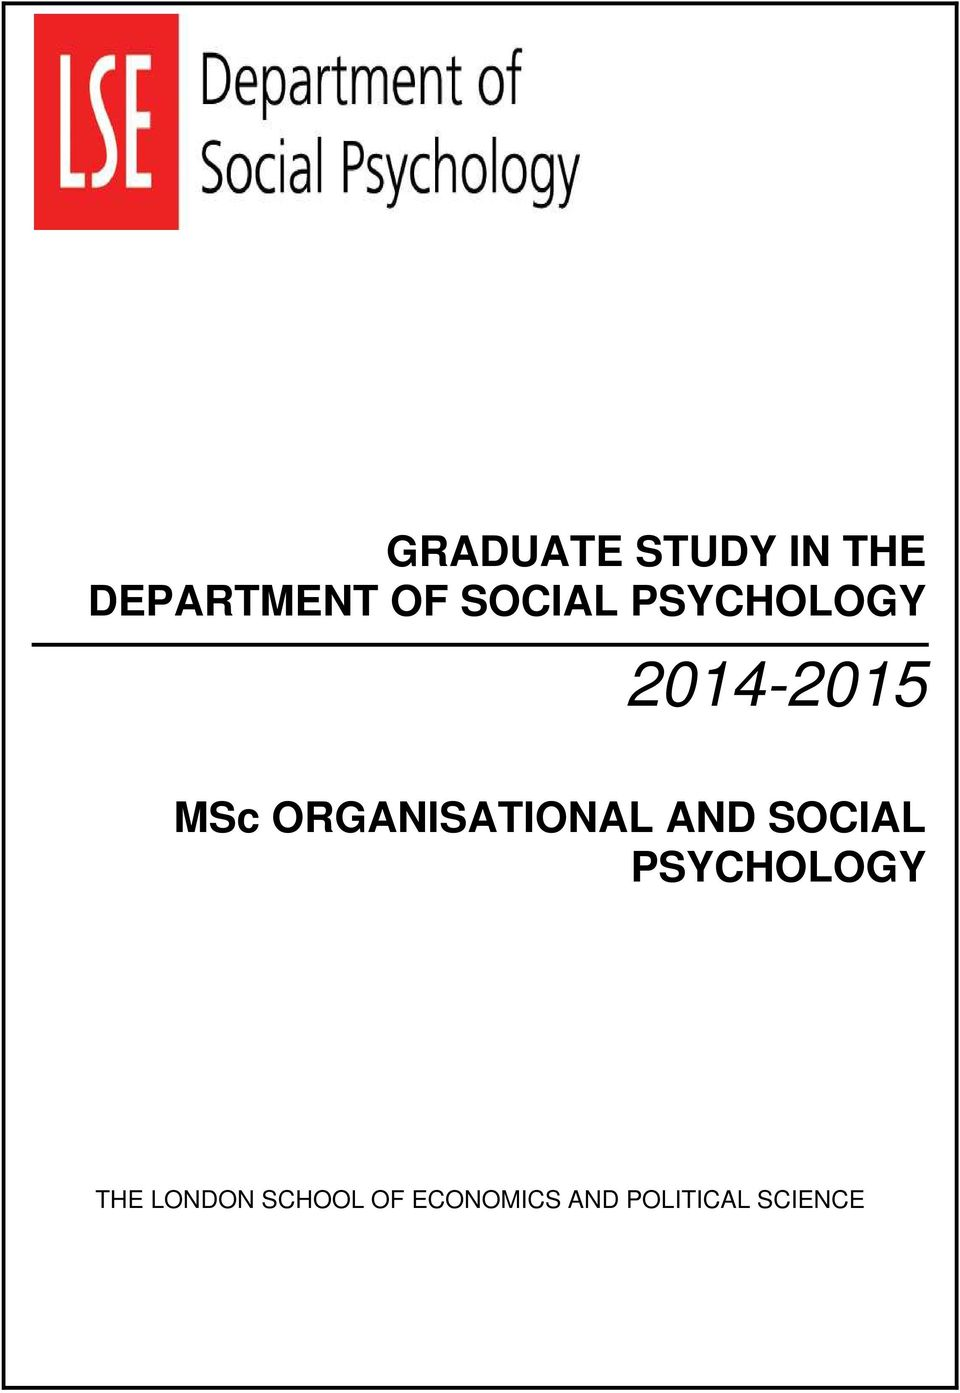 ORGANISATIONAL AND SOCIAL PSYCHOLOGY